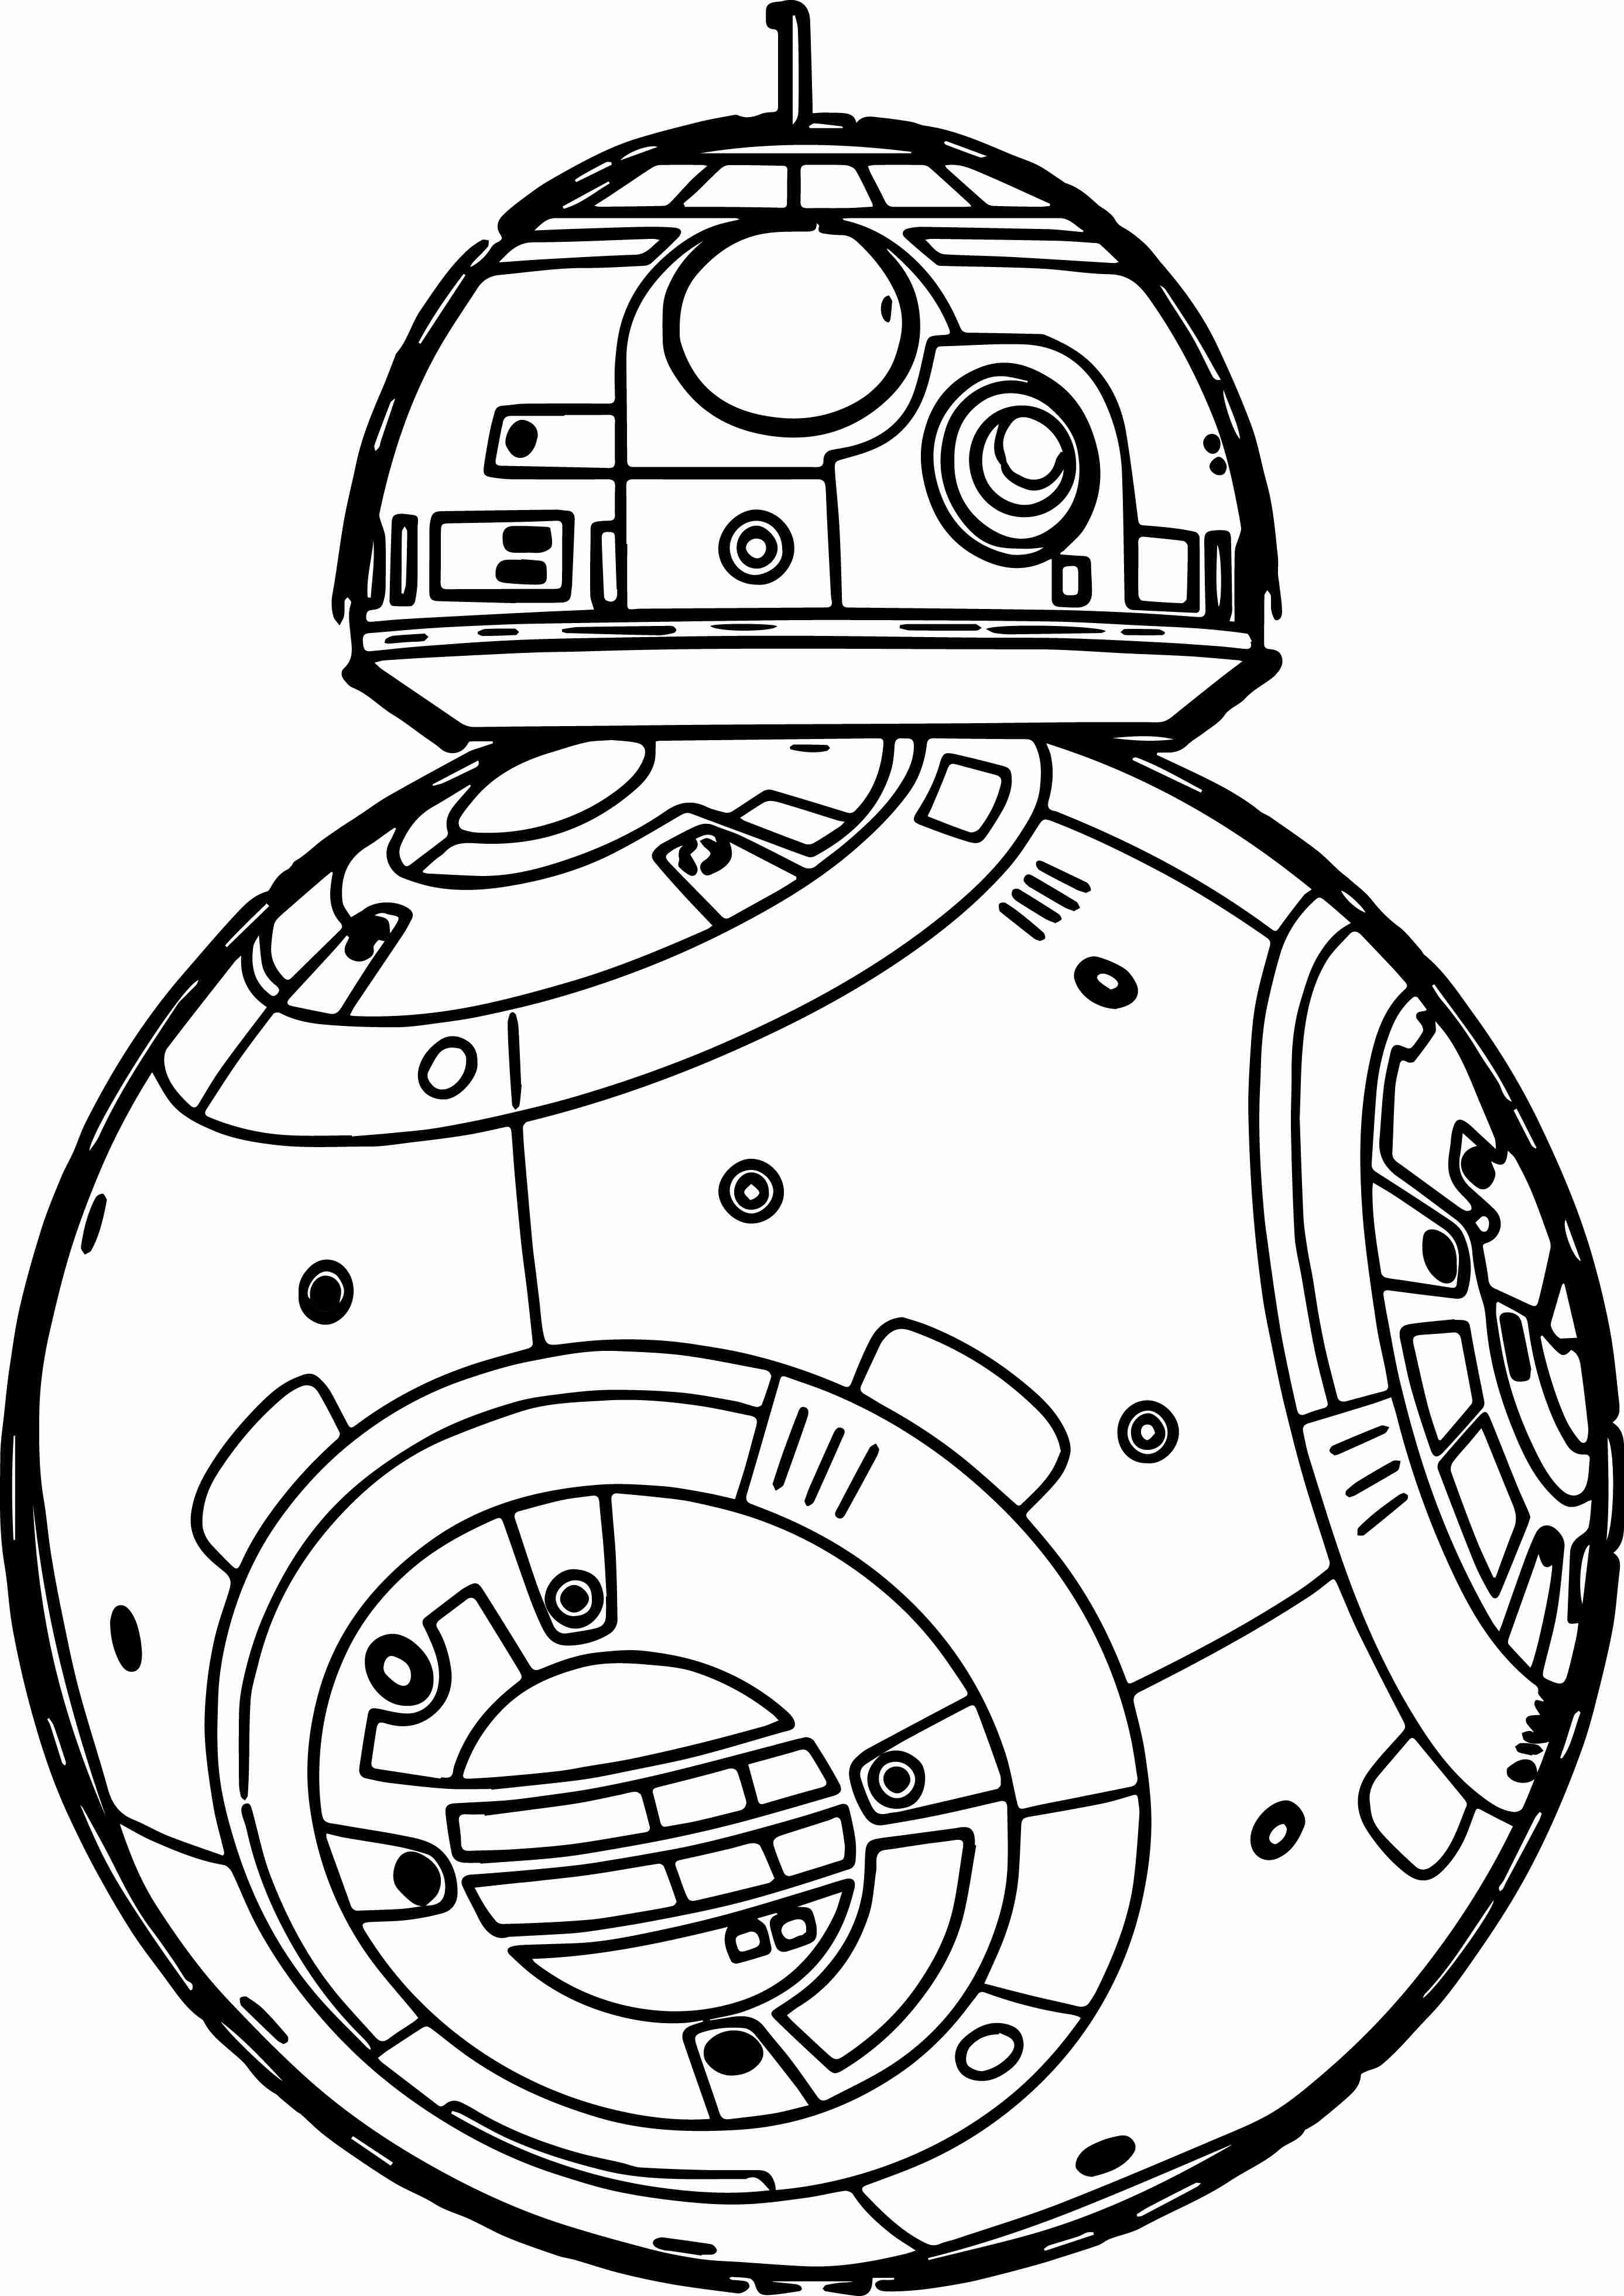 2774x3921 Star Wars The Force Awakens Coloring Pages Wecoloringpage